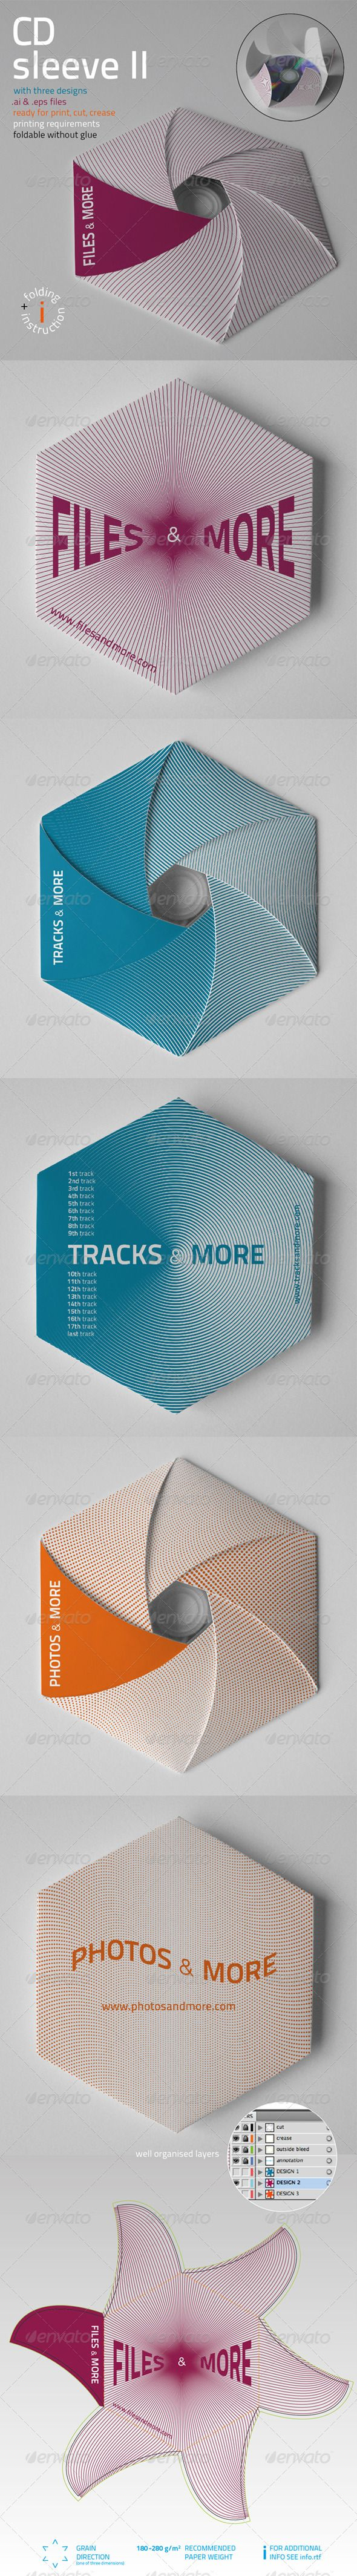 CD Sleeve v2 #GraphicRiver CD sleeve packaging Font from this link Failes included .ai & .eps (CS2-CS5) Ready for print, cut, crease Well organized layers Foldable without glue Tested construction Recommended paper weight: 180 – 280 g per square meter Printing requirements Folding instructions included